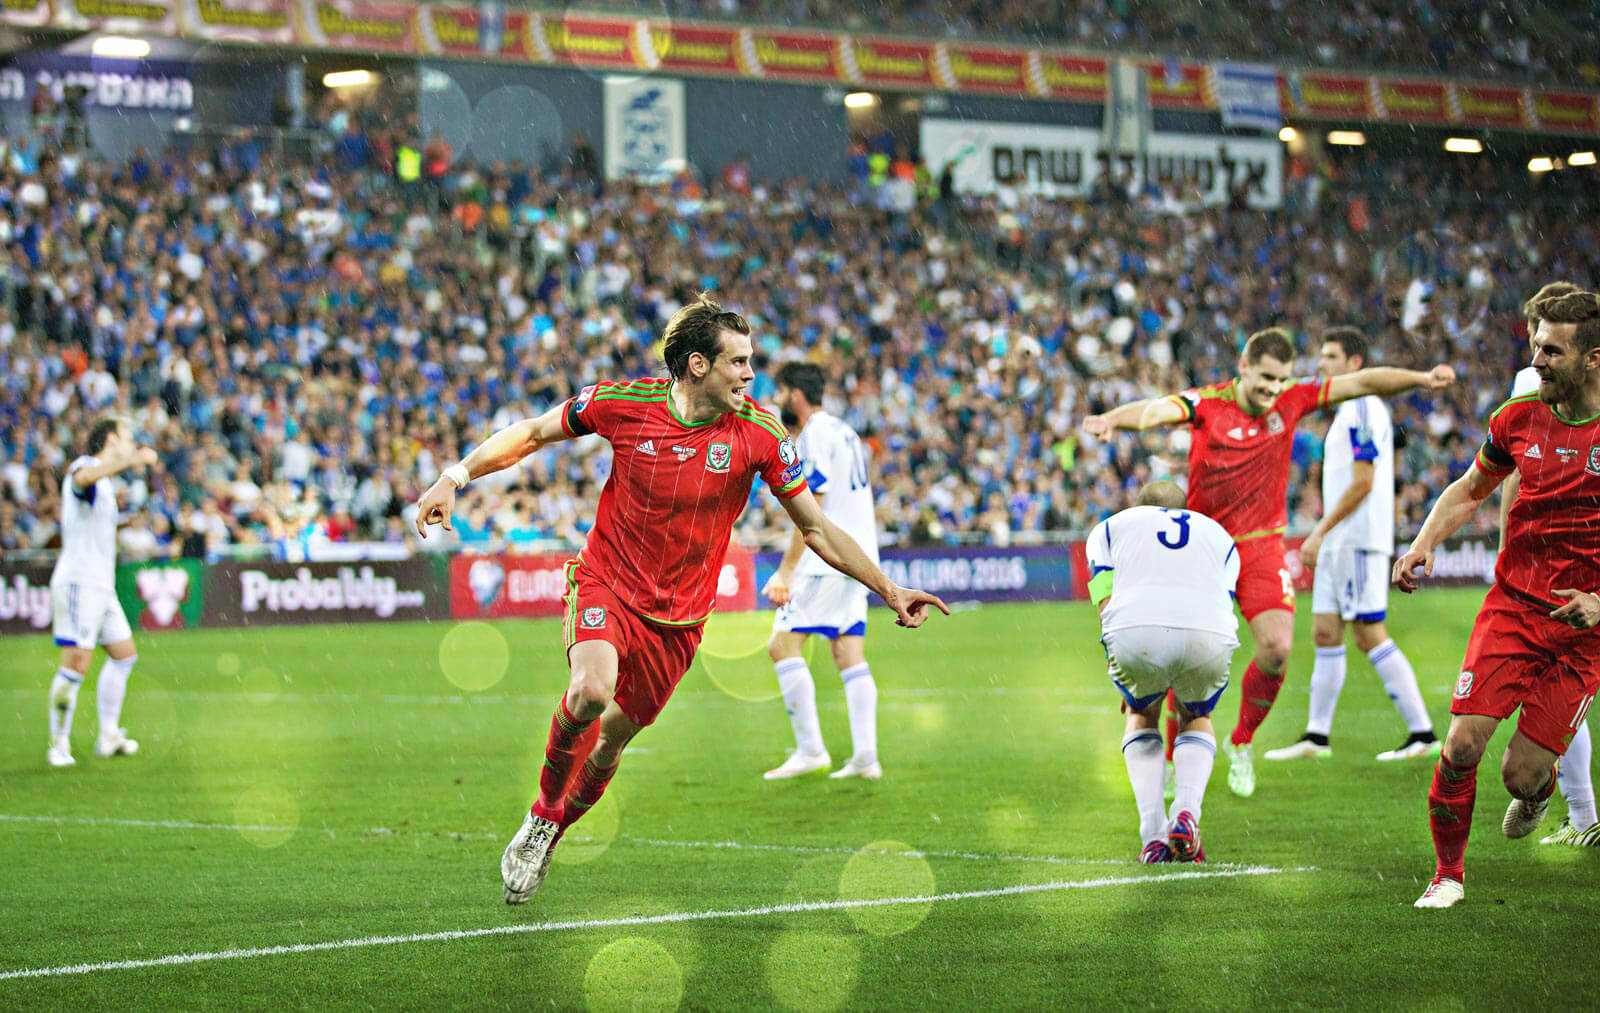 Gareth Bale FAW photography